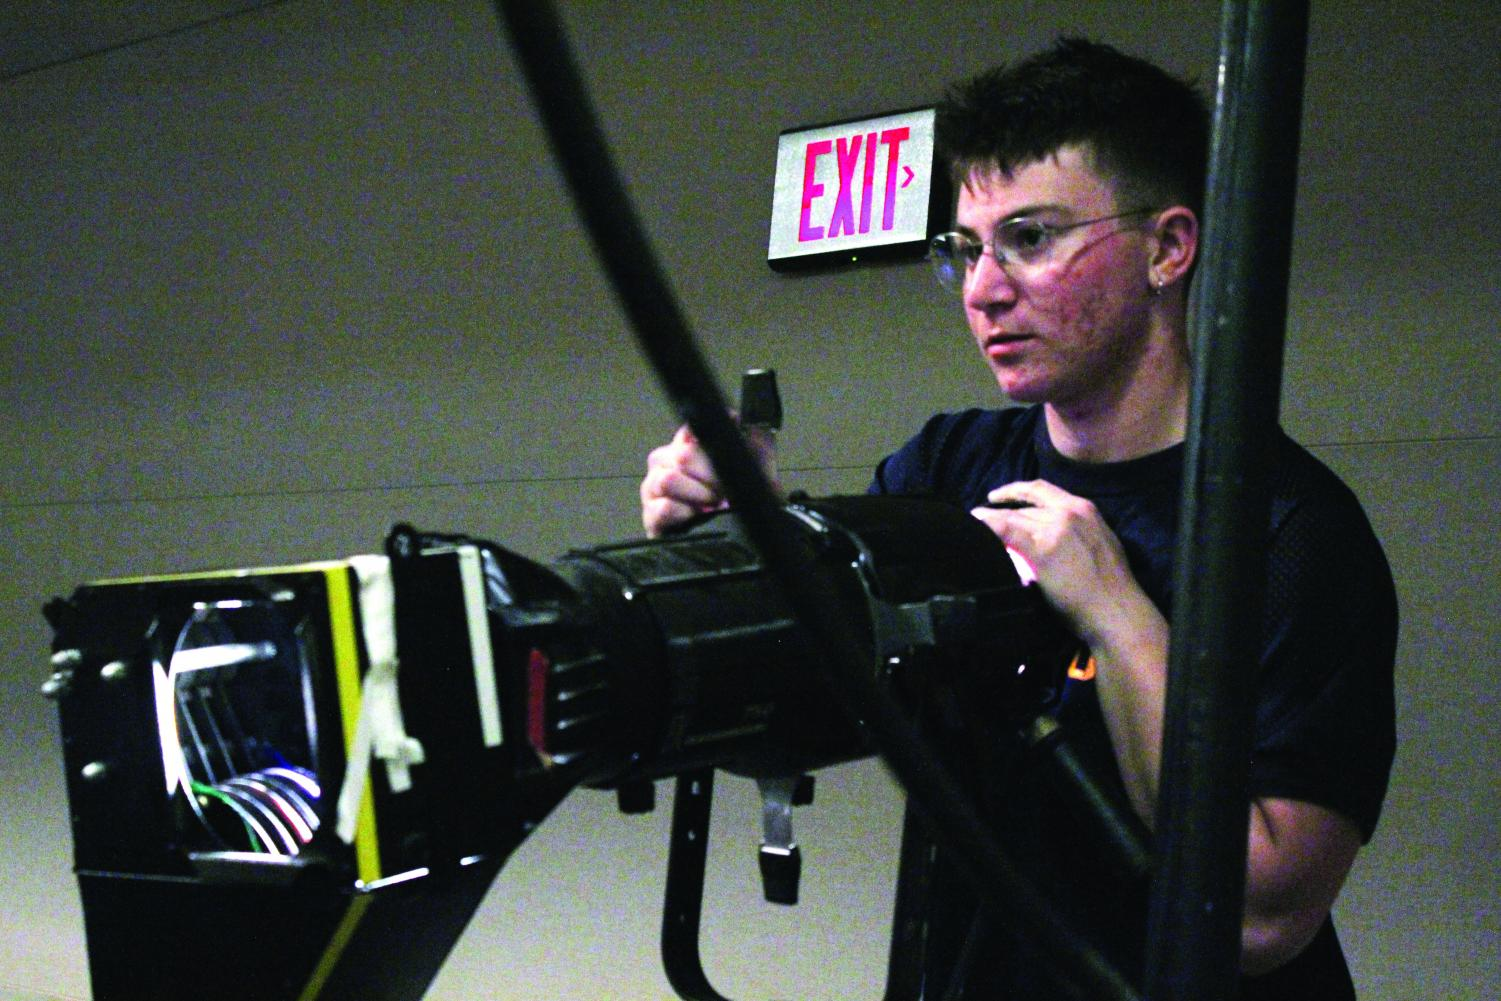 Adjusting — Senior Liam Romano runs the lights in his position at the Lawrence Arts Center.